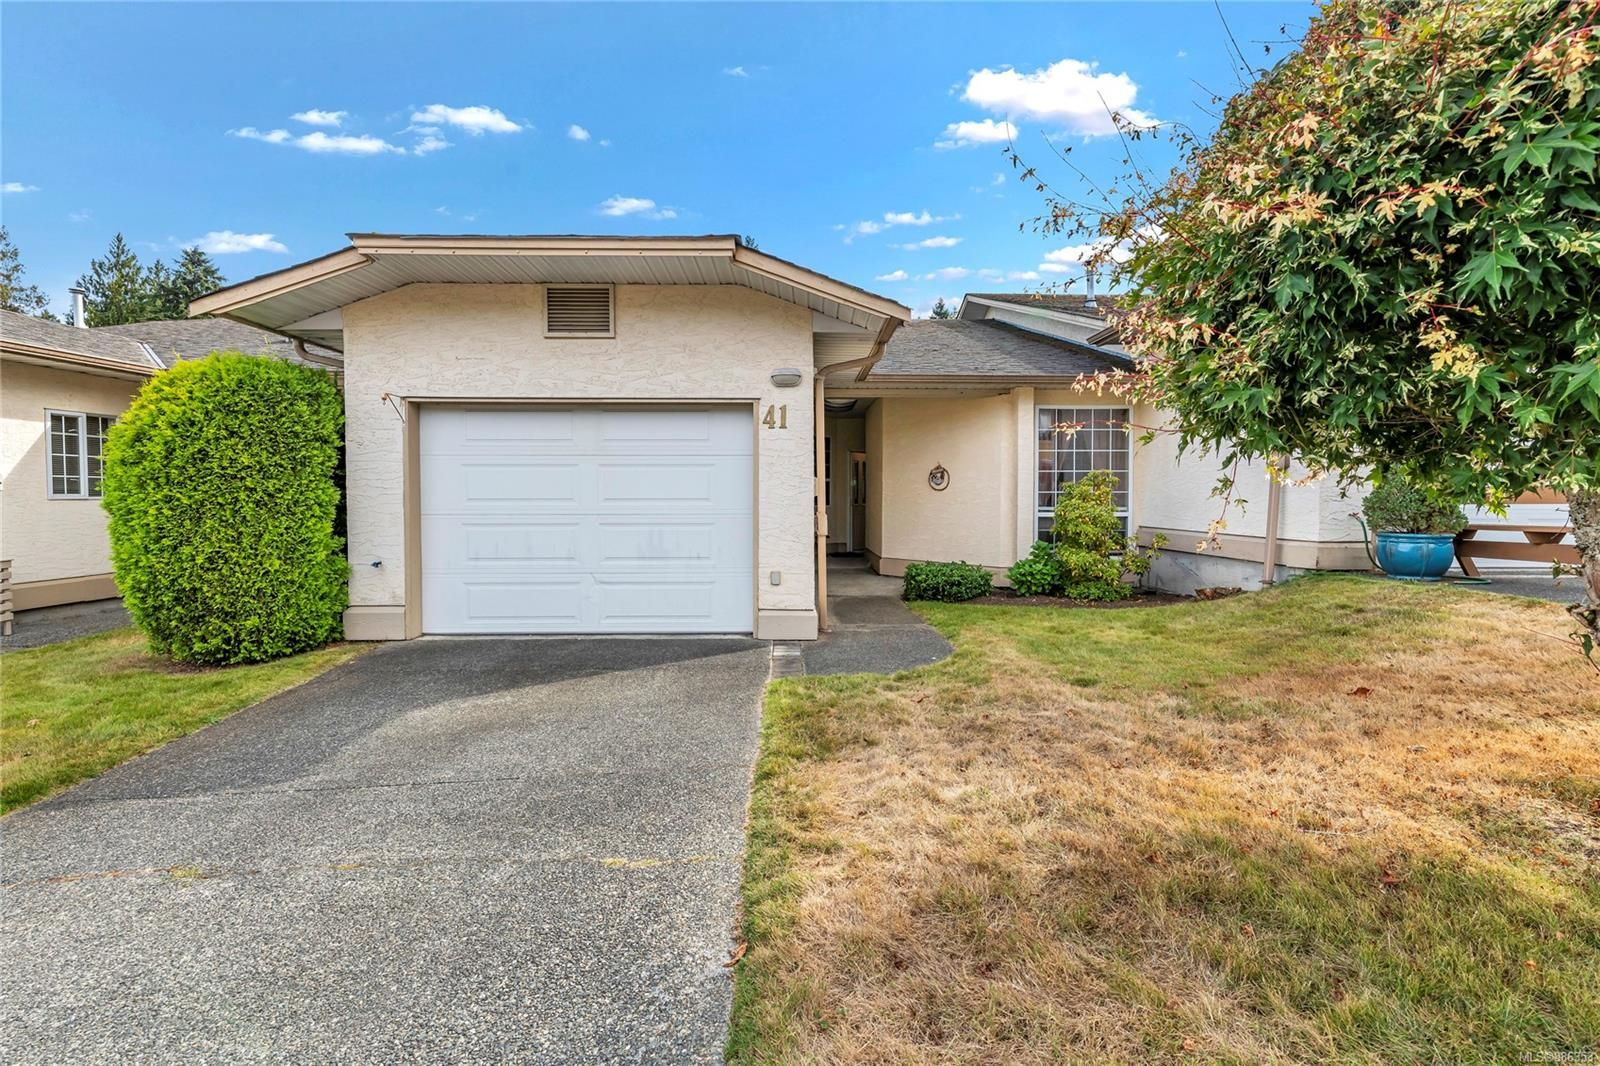 Welcome to 41-2979 River Road, Chemainus BC!